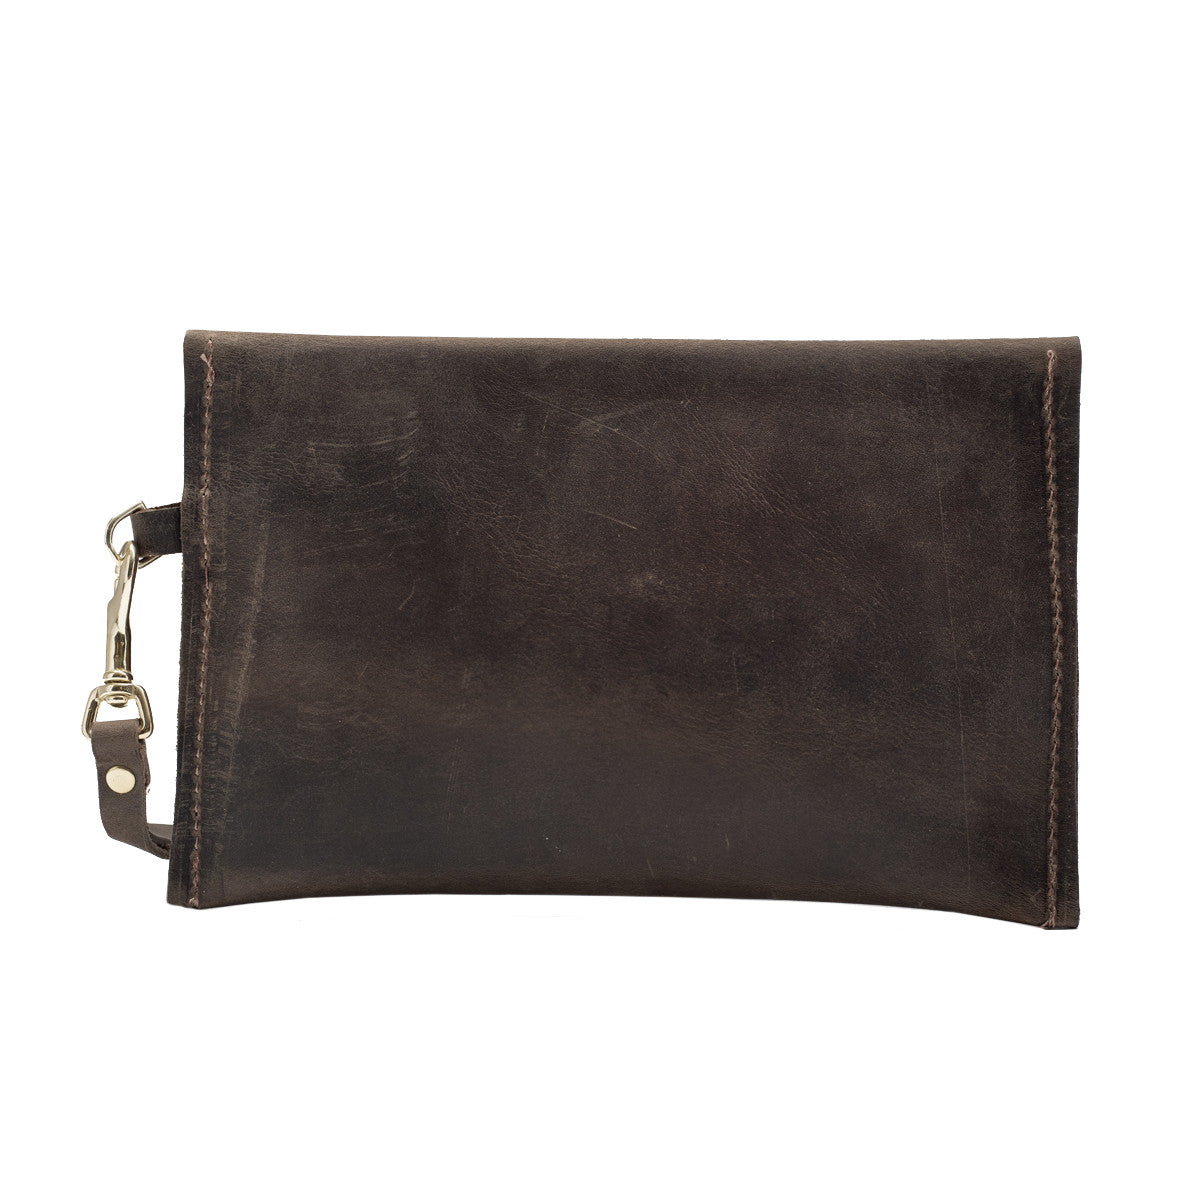 Leather Clutch with Calf Hair Flap, Alyssa Clutch